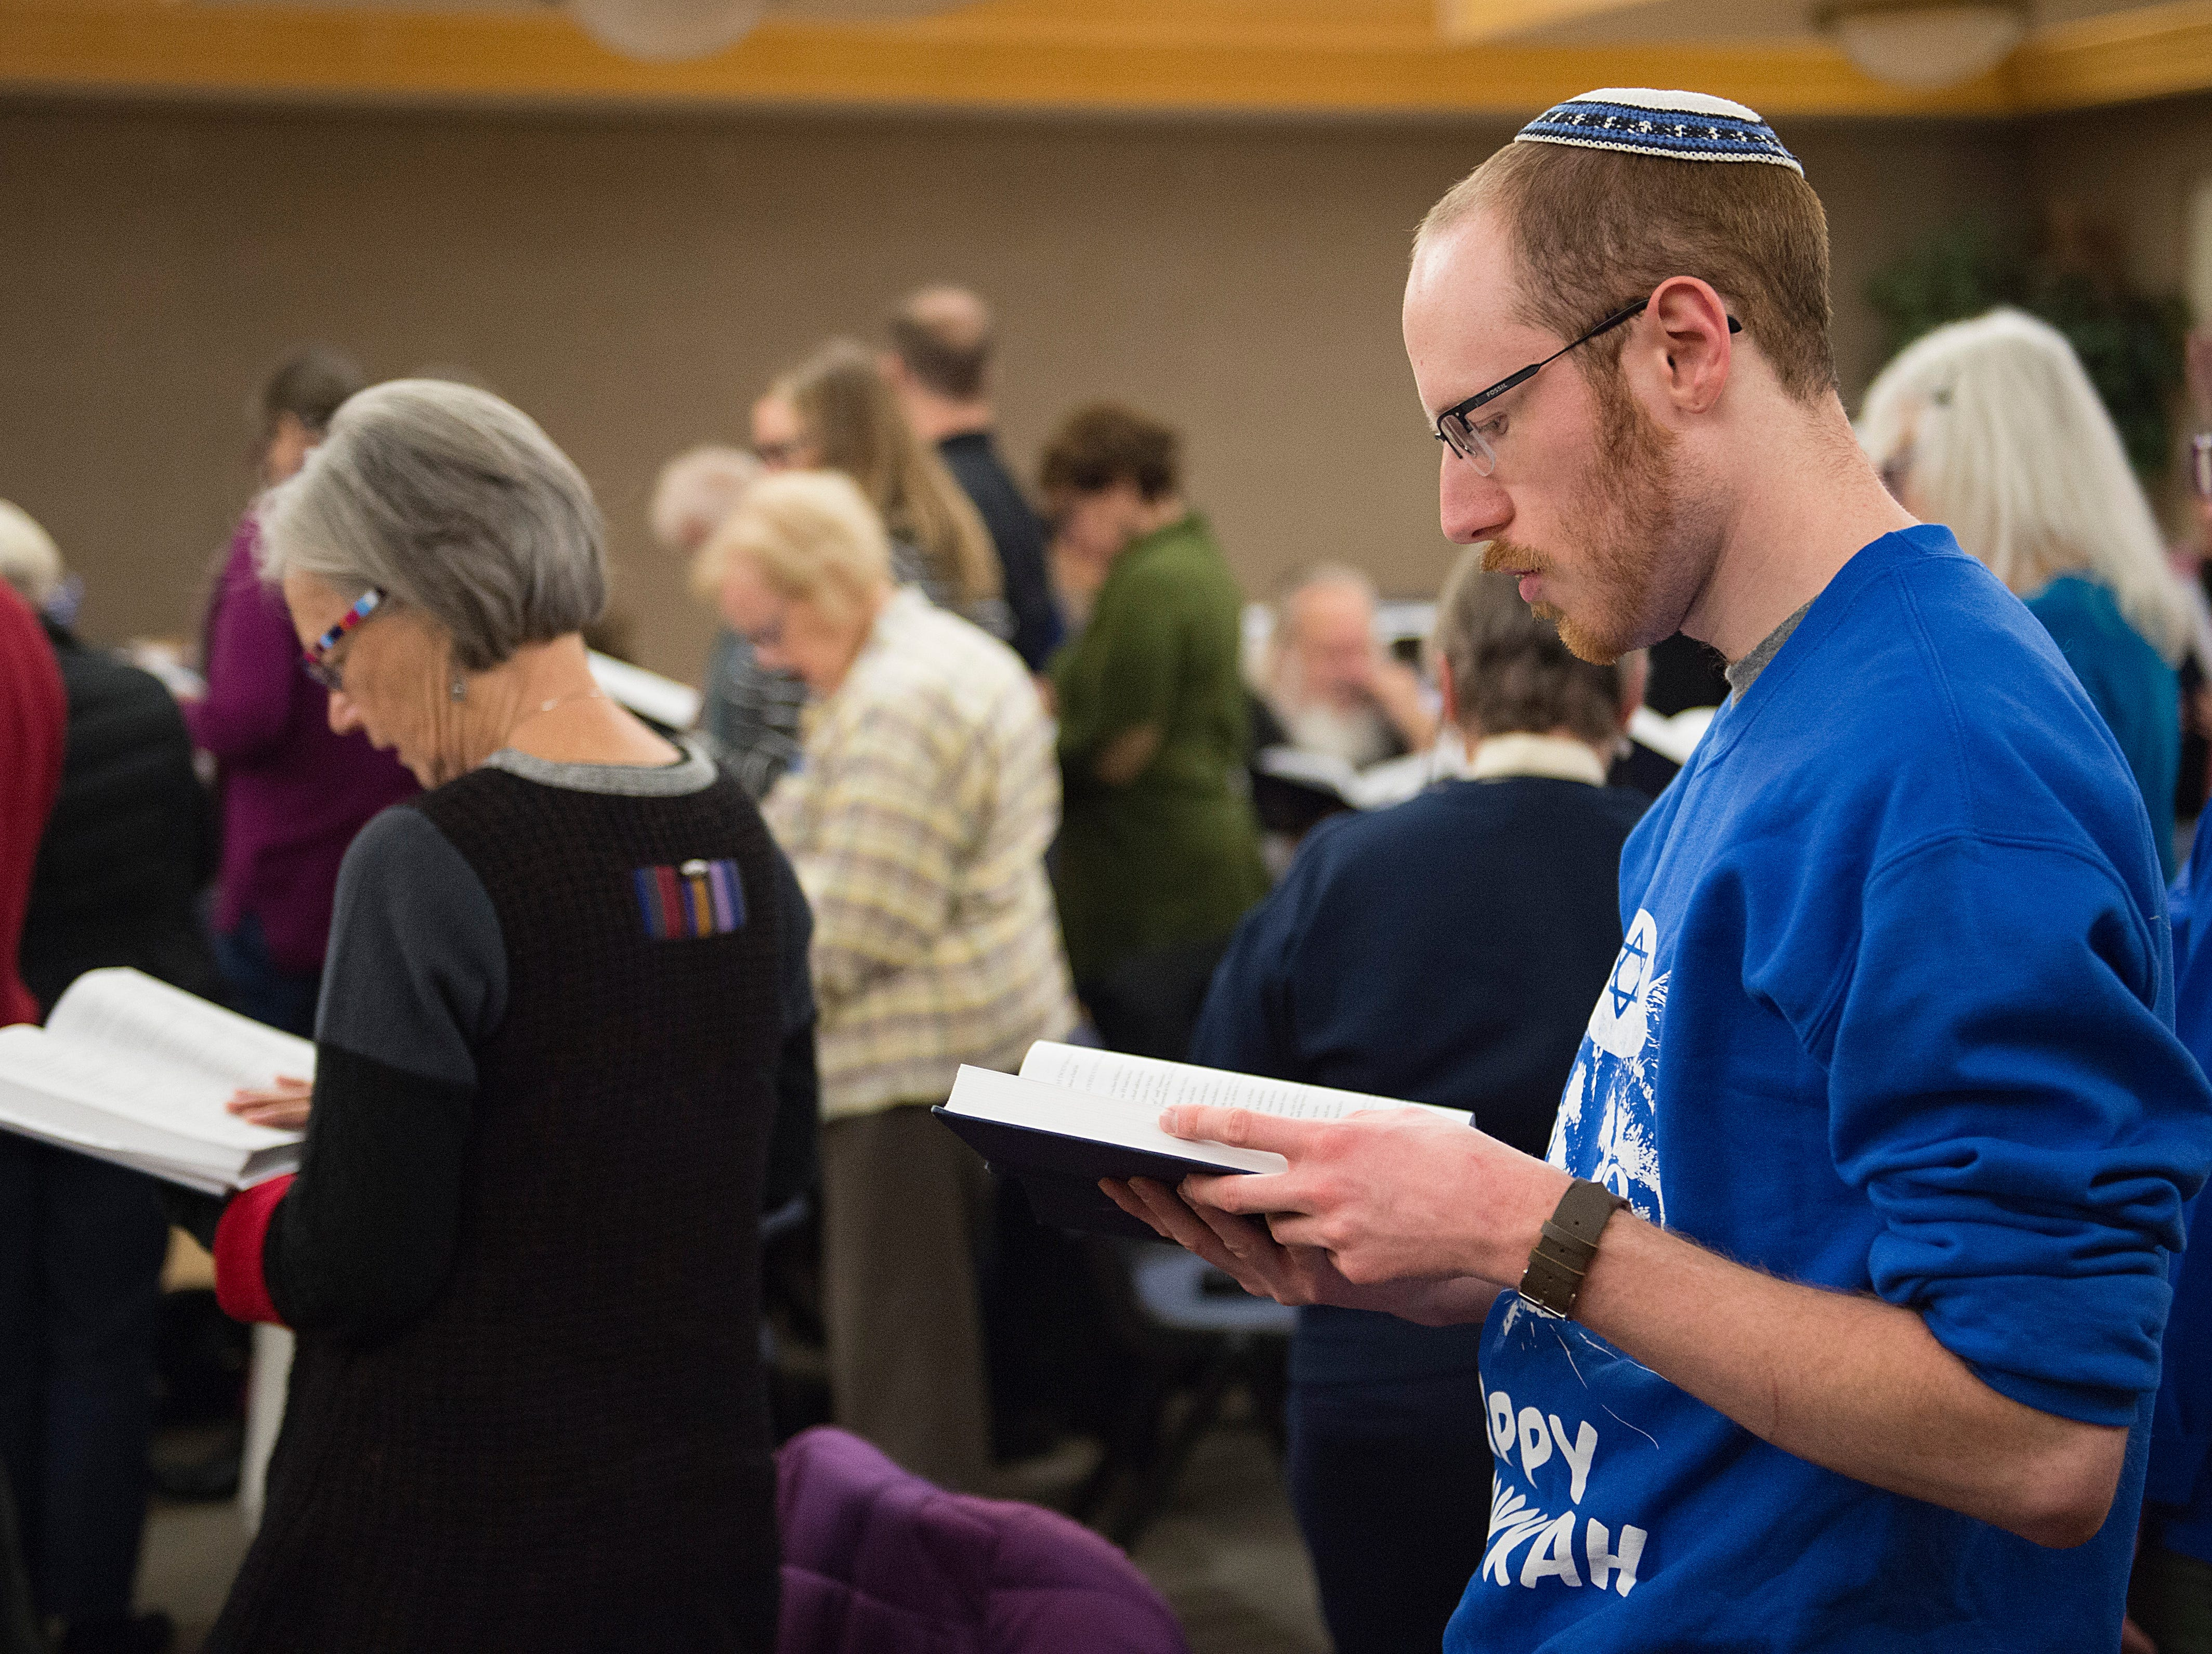 Dan Elliott sings along during Shabbat services on the sixth night of Hanukkah during a family gathering with Temple Or Hadash at the Fort Collins Senior Center on Friday, December 7, 2018.